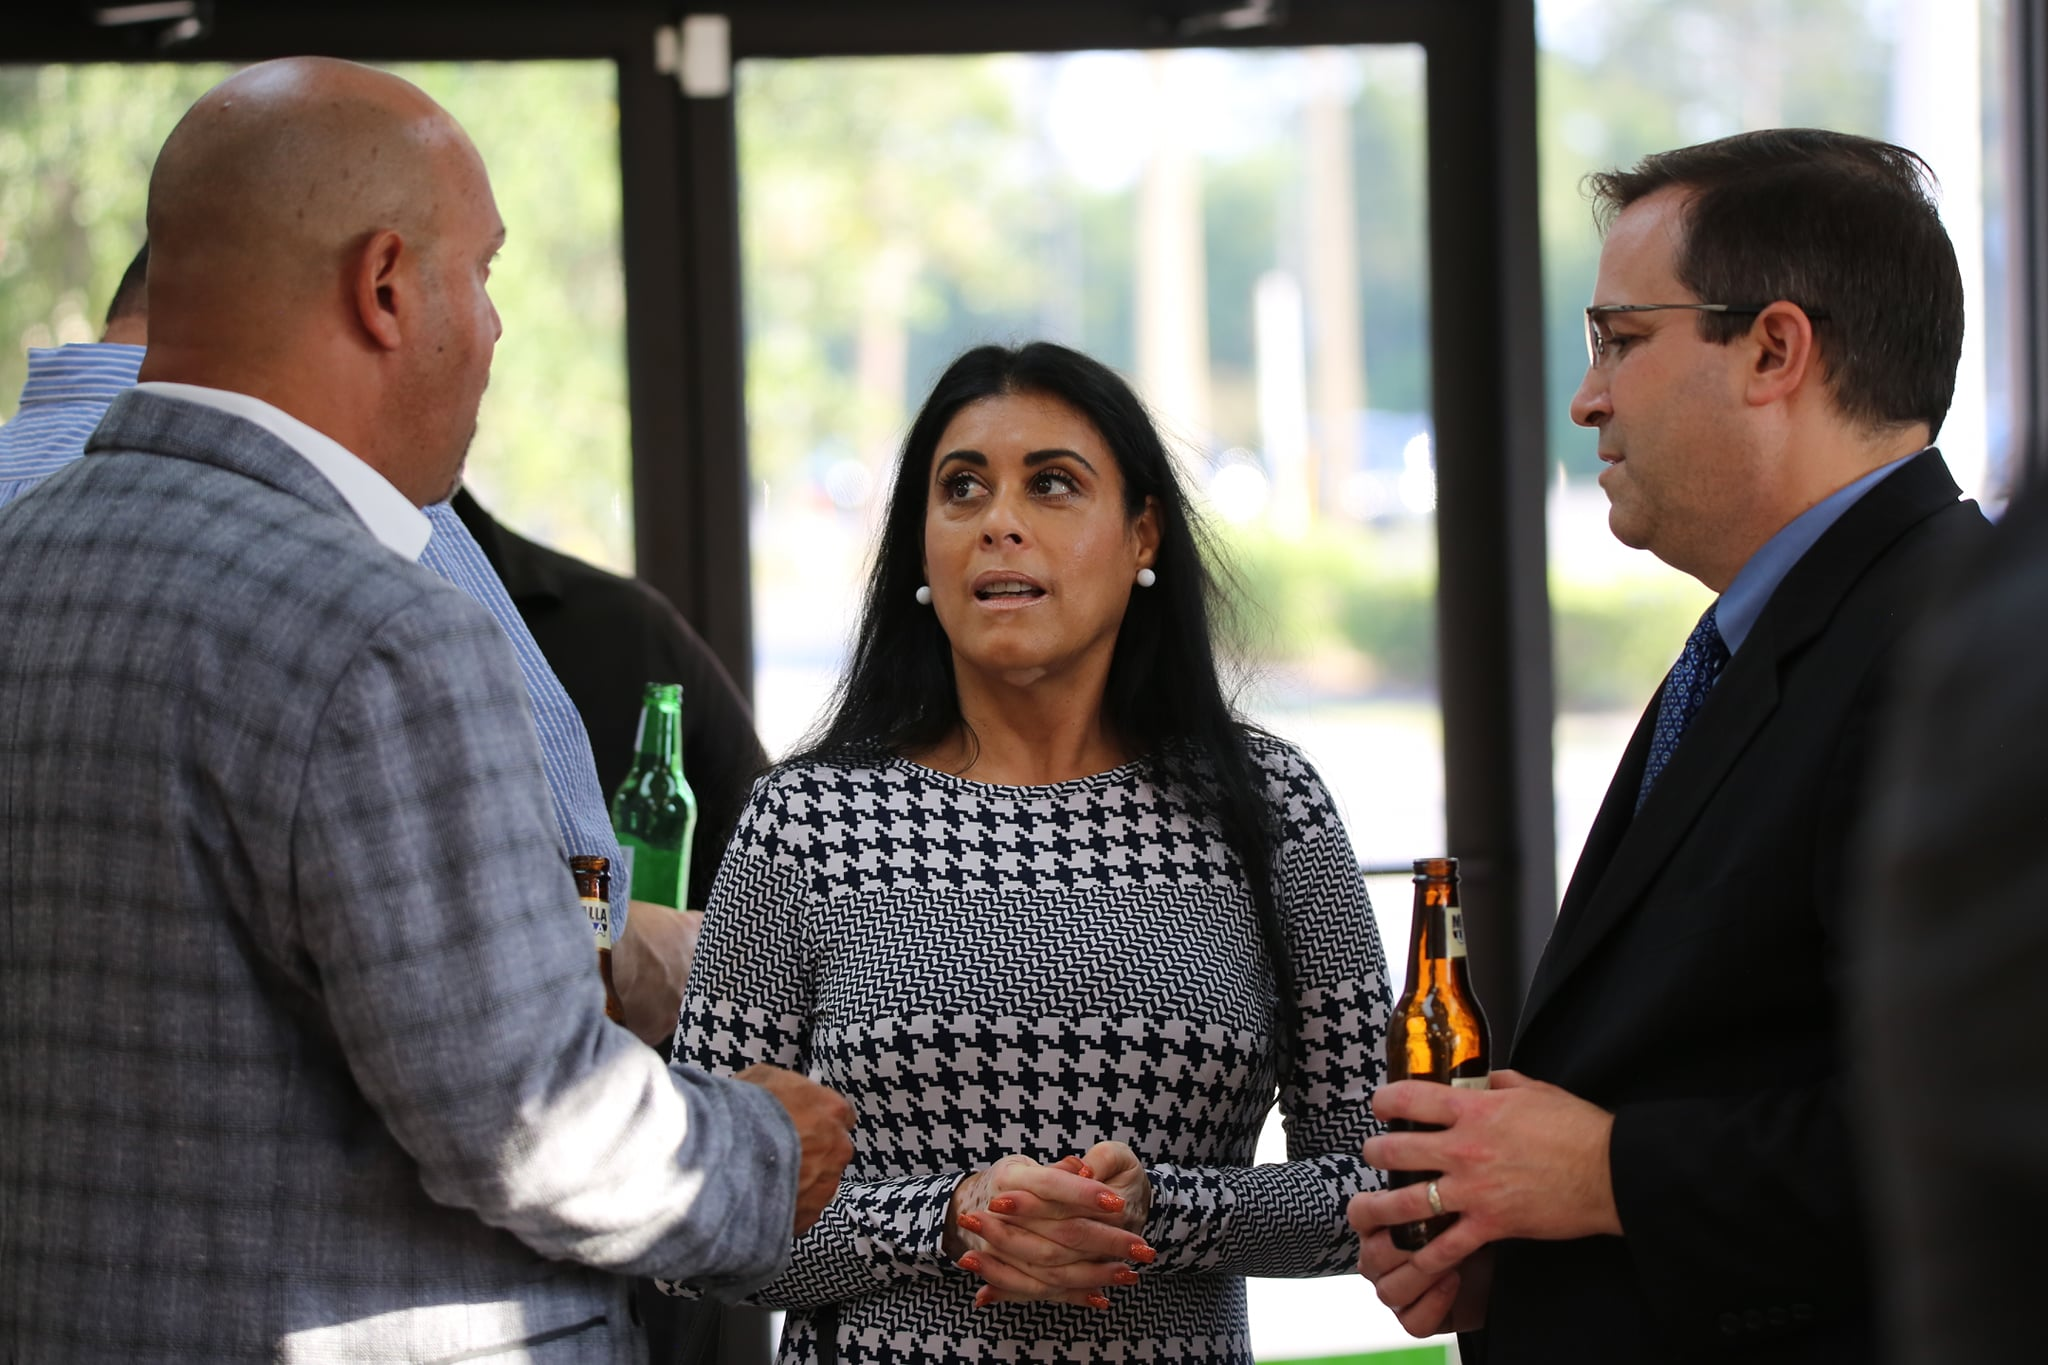 Florida State Representative Daisy Morales speaks with Orlando Gateway District's Board President Dennis Ferraro (right) and Executive Director Amilcar Cordova on supporting and funding business growth in her district. (District 48). Photo: Willie David/Florida National News.